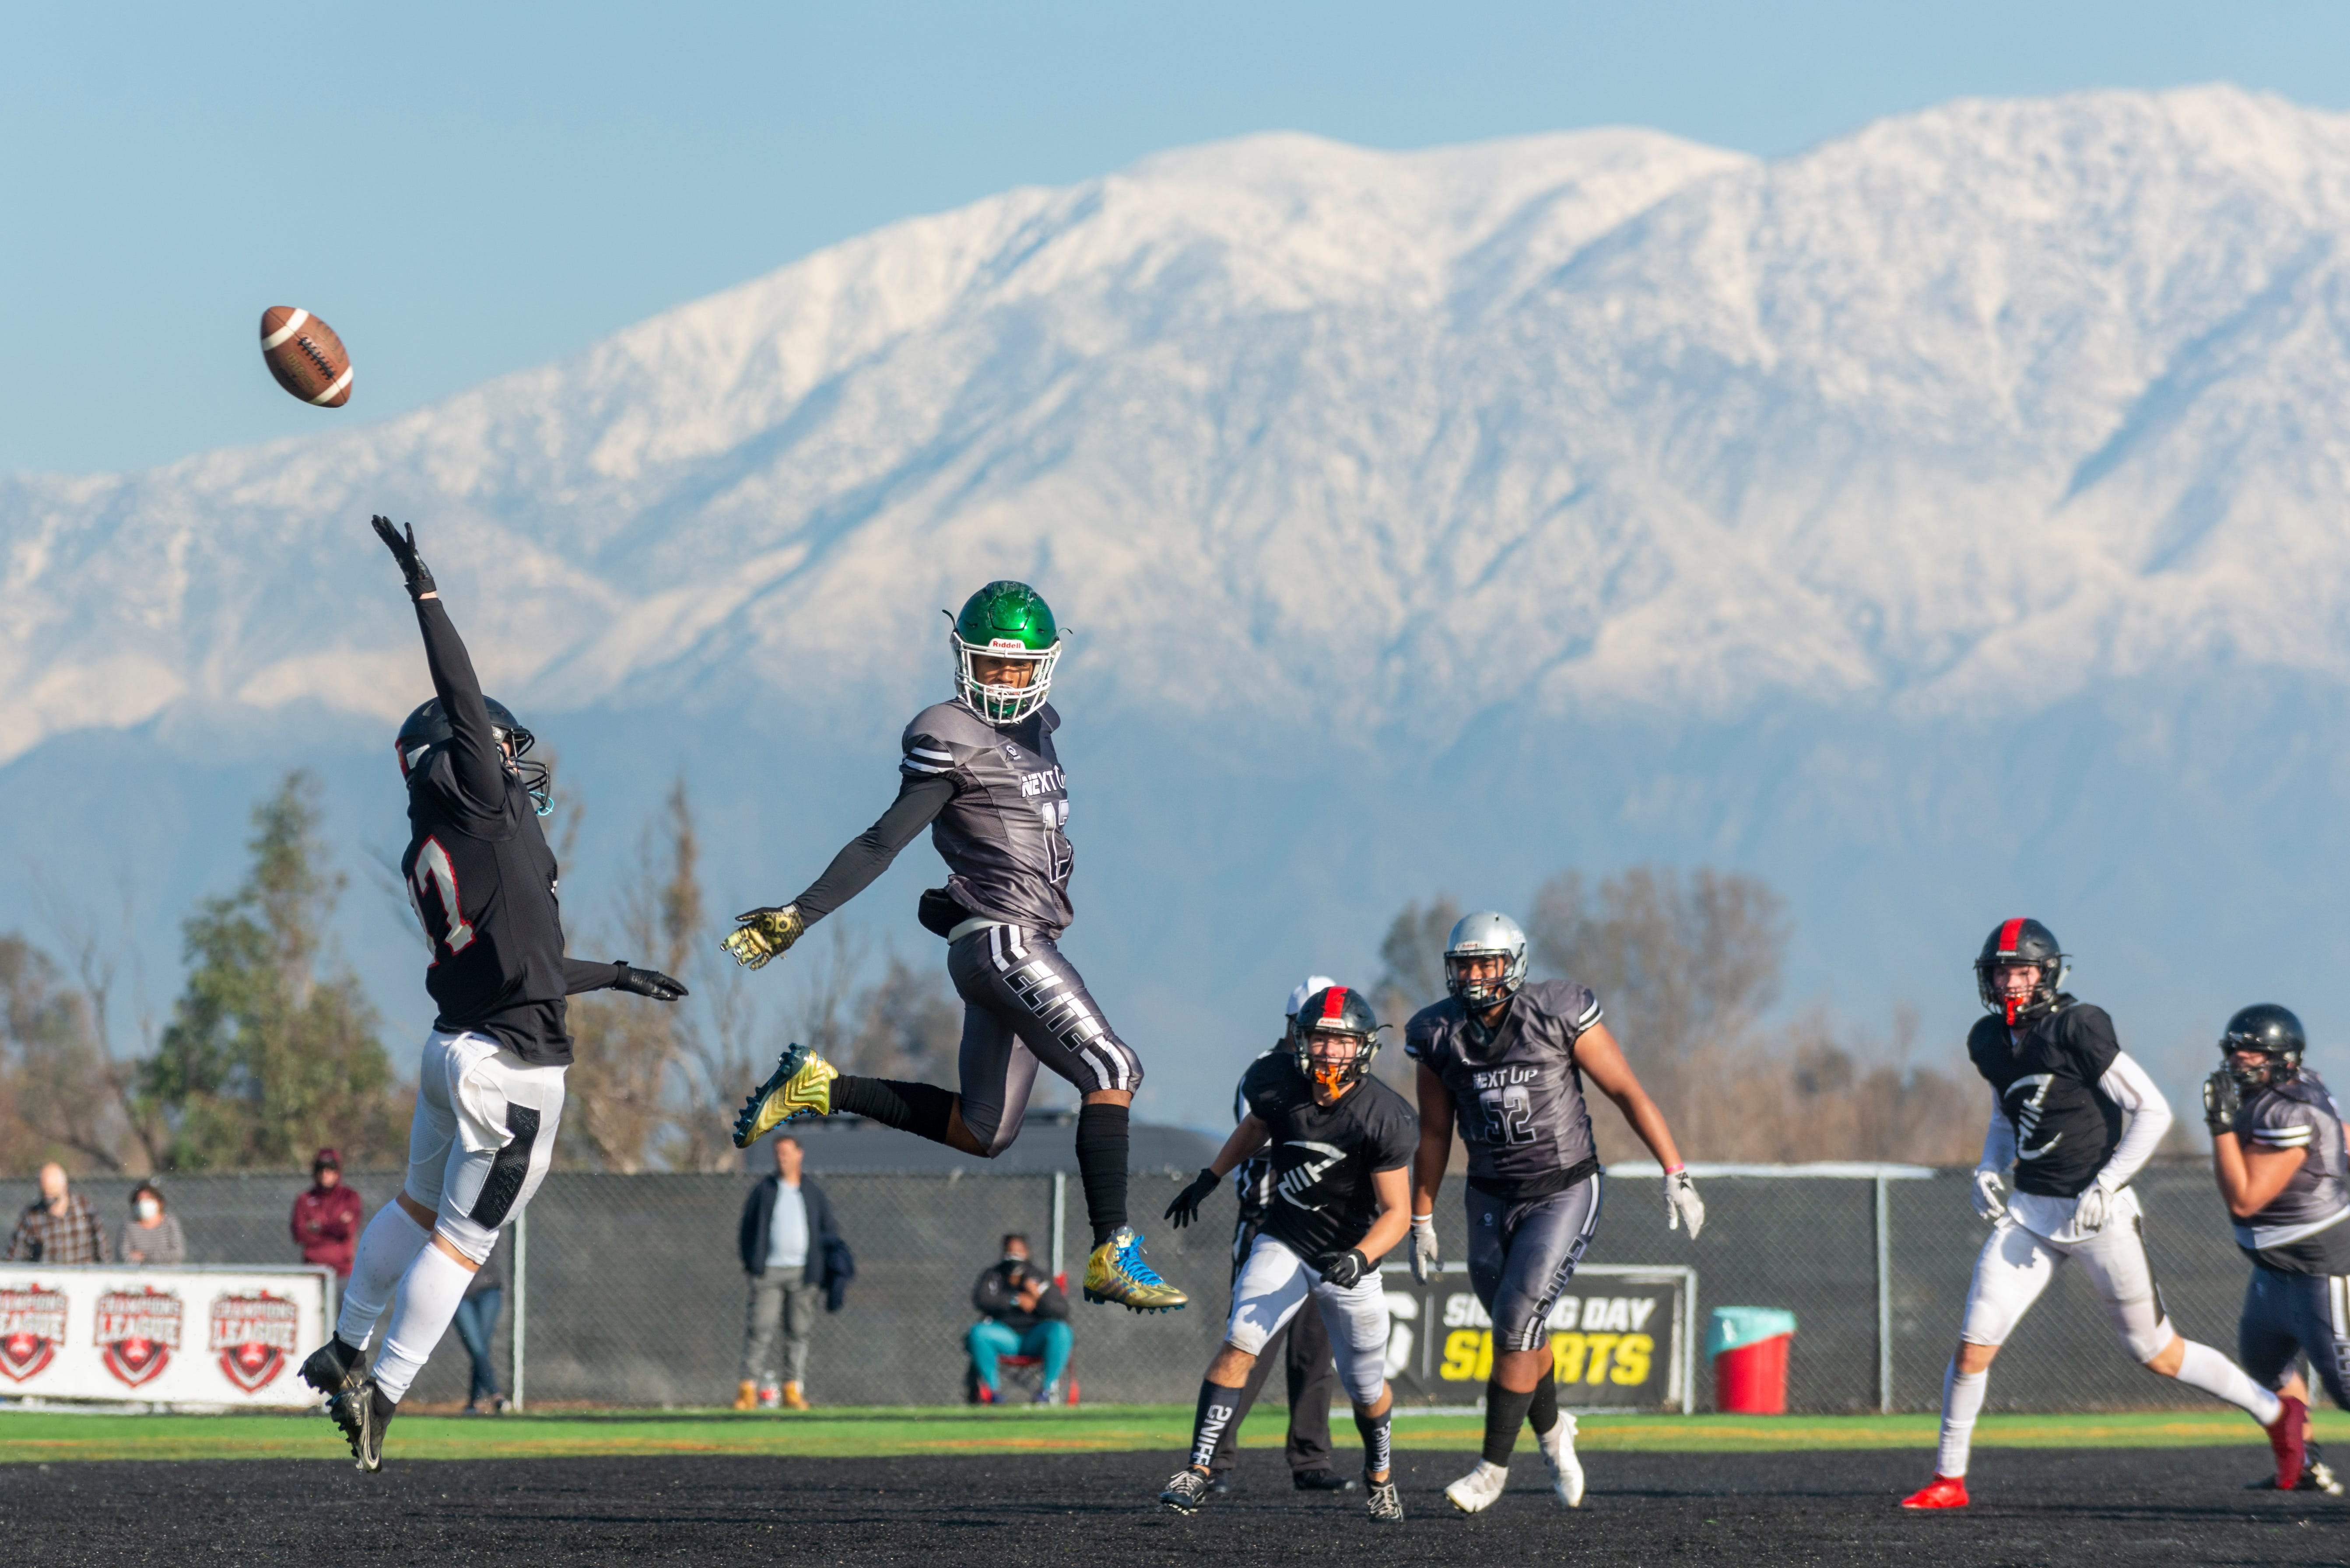 Next Up Elite's Corinthias Jones, center, watches the ball fly past him against Redzone Elite during a Winner Circle Champion League game on Saturday, January 30, 2021.